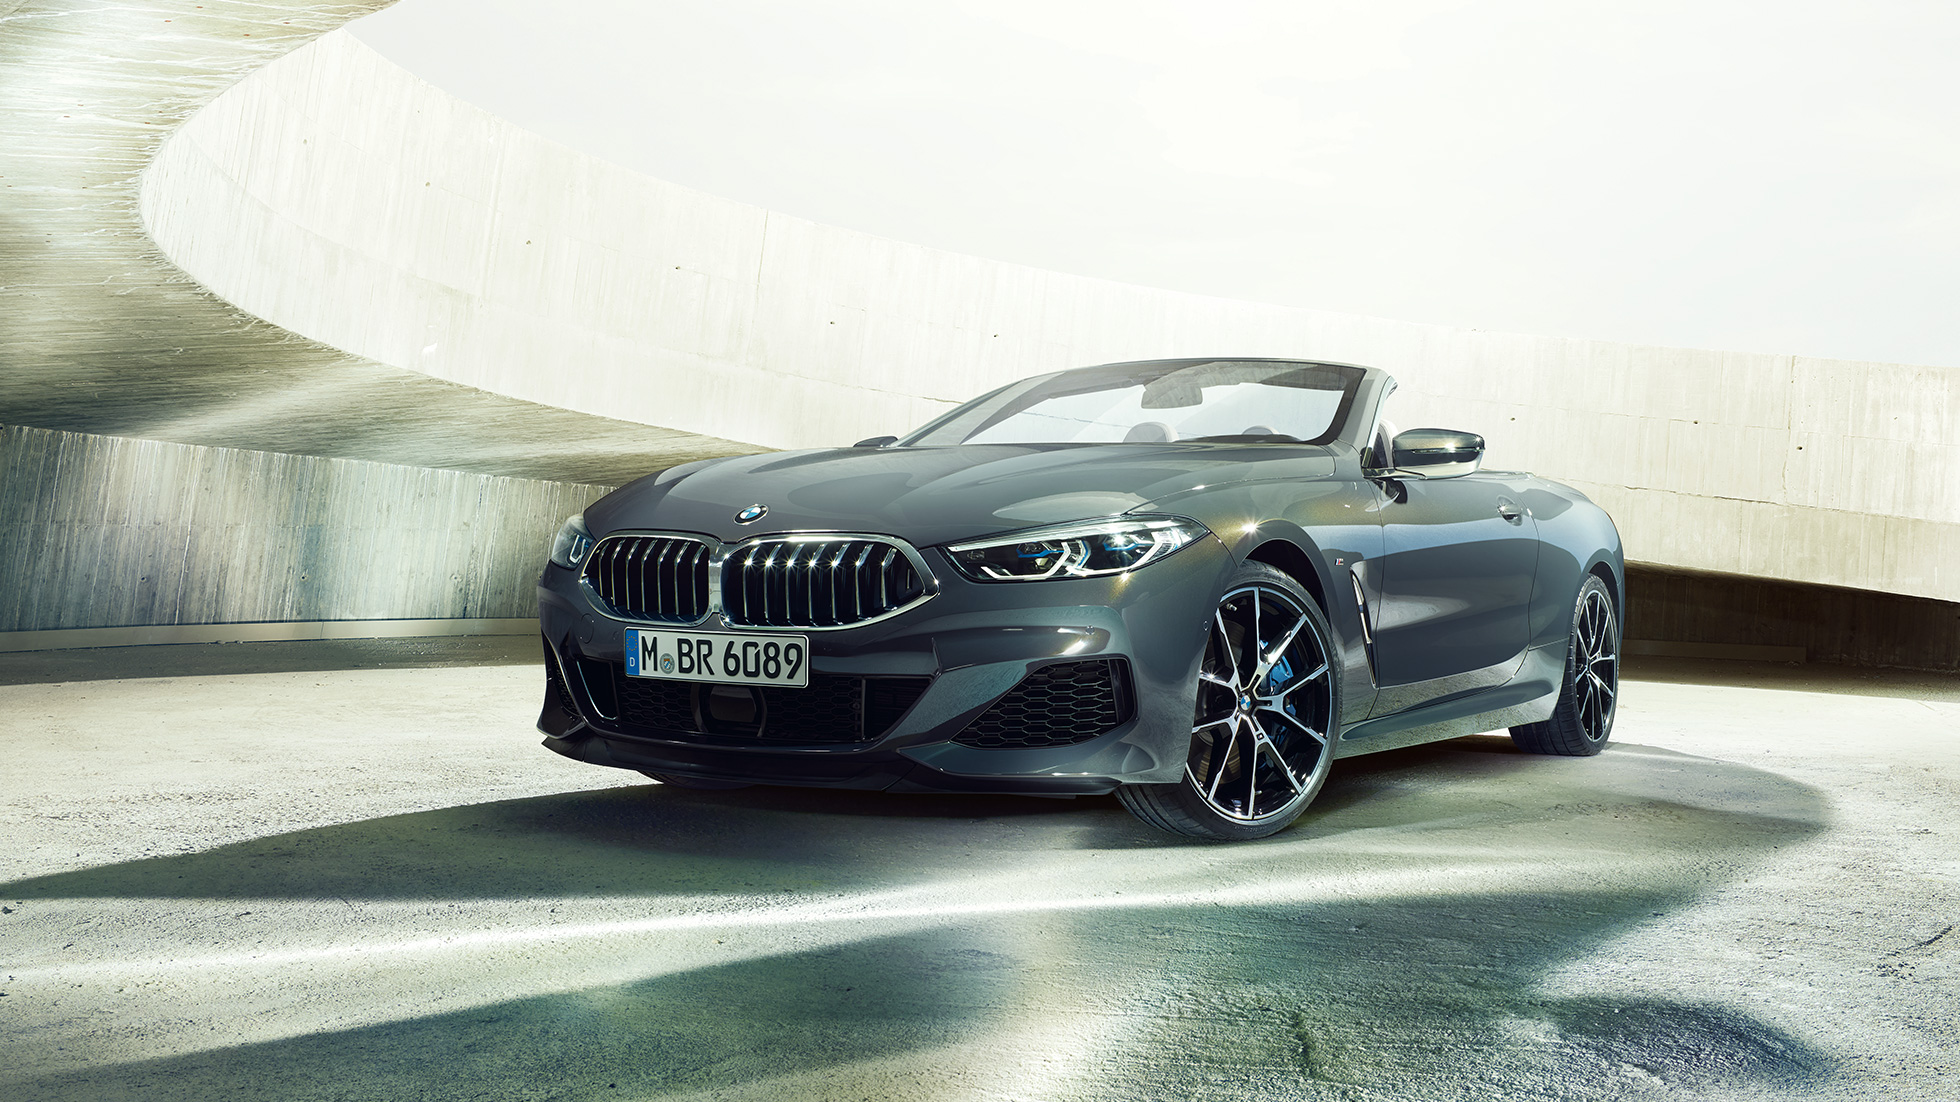 BMW M850i xDrive Convertible in Dravit Grey metallic with open softtop, three-quarter front view, standing in concrete building.